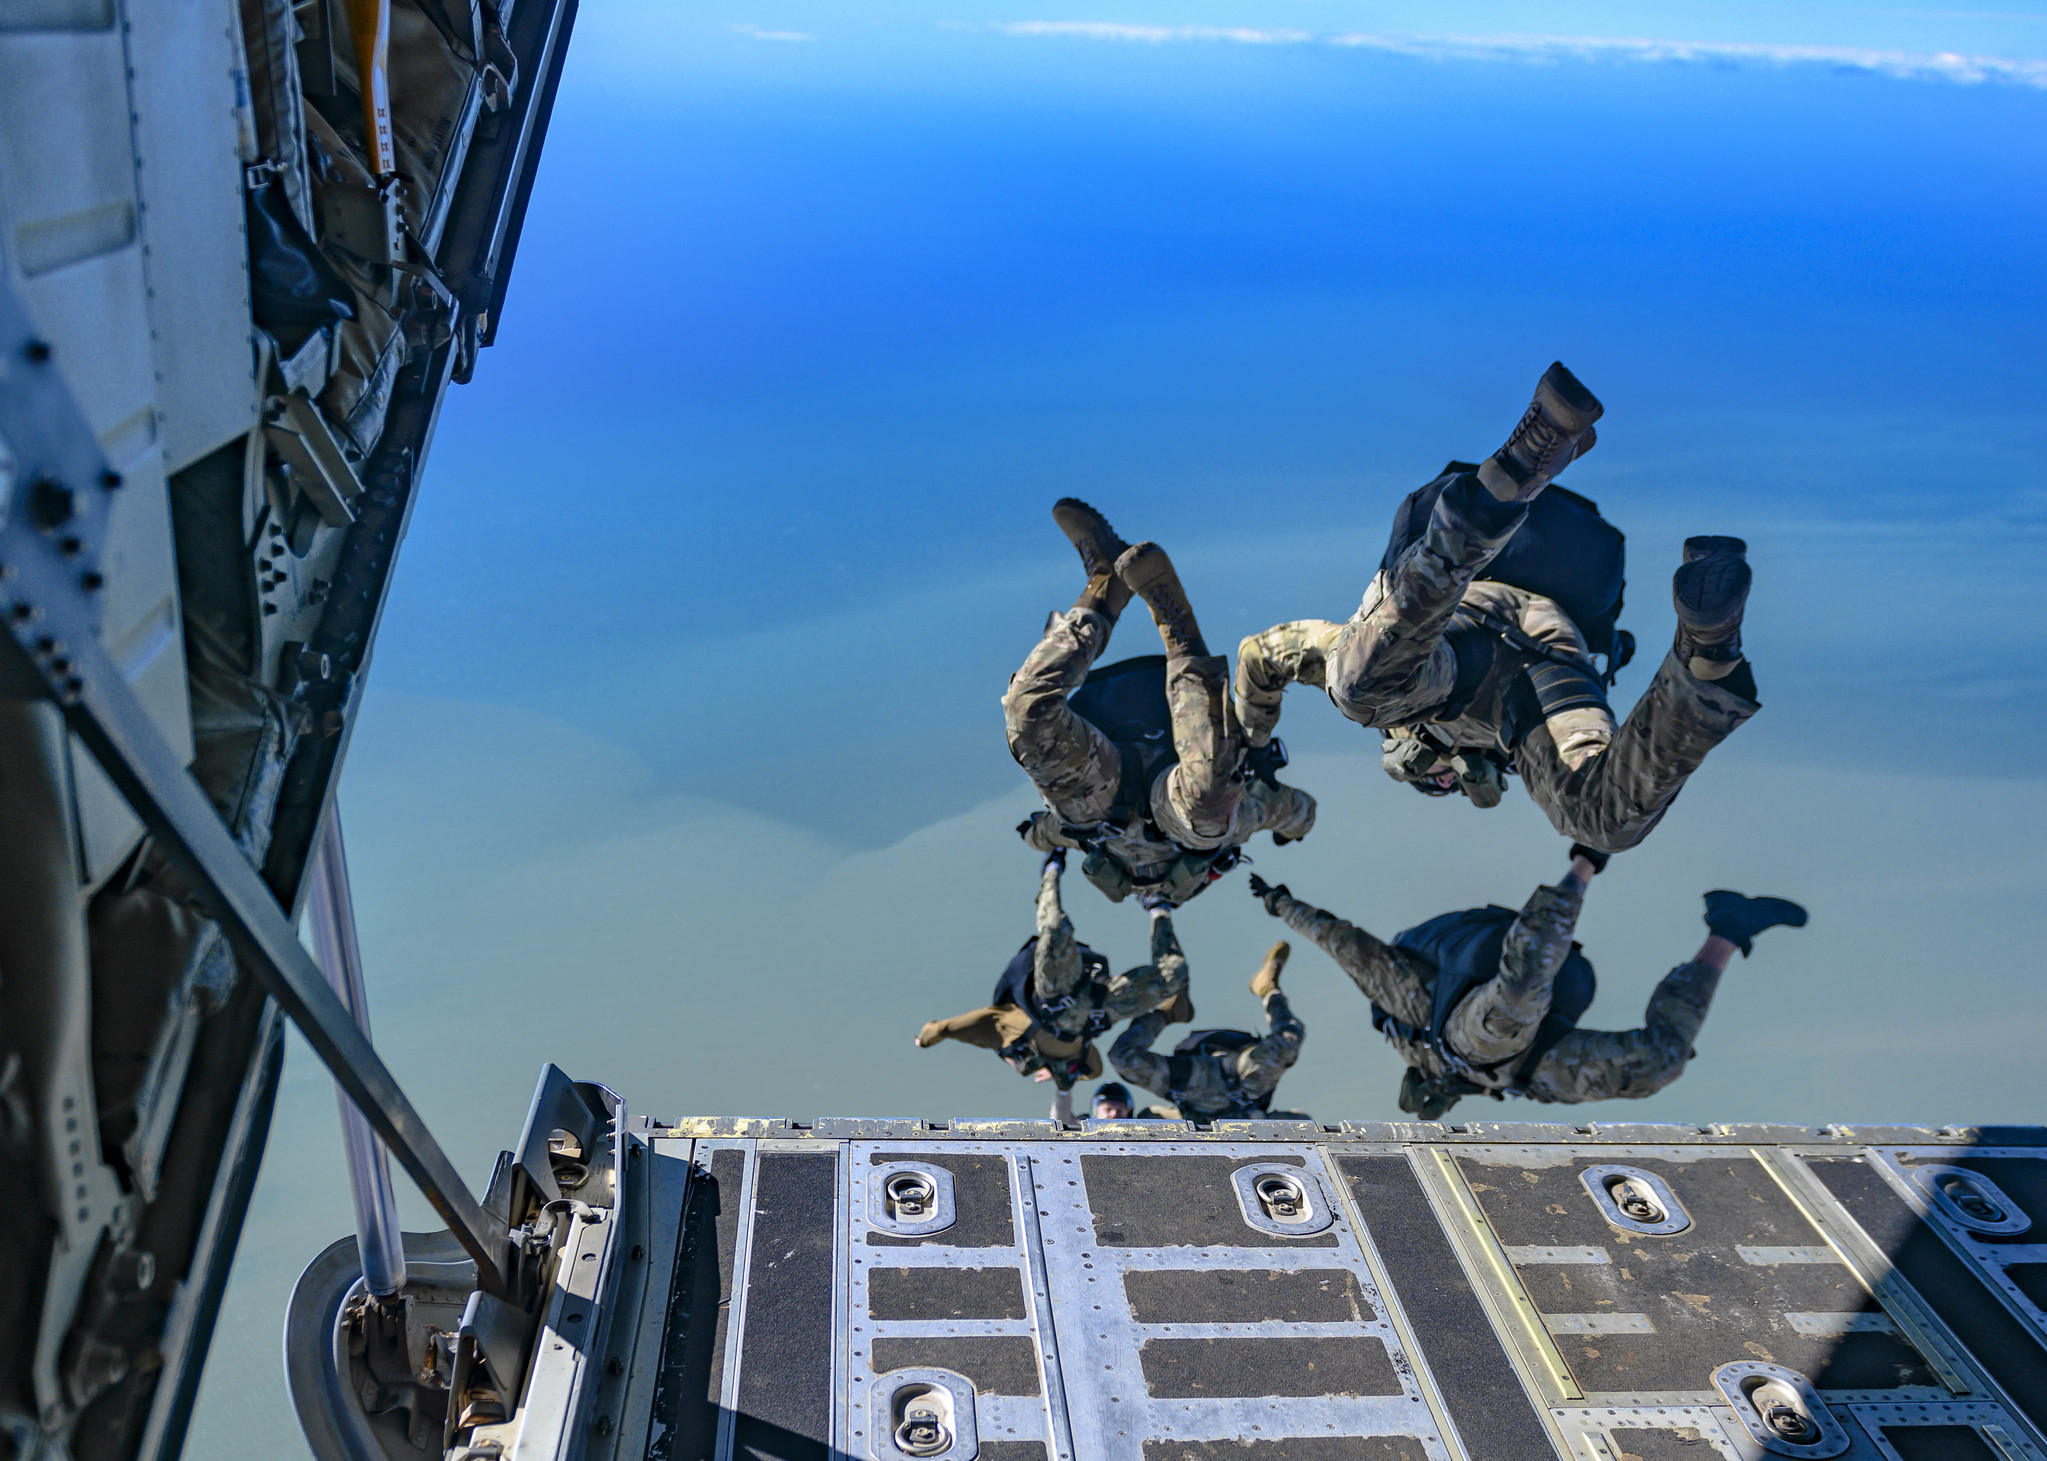 Explosive ordnance disposal technicians assigned to Explosive Ordnance Disposal Mobile Unit (EODMU) 8 conduct military free-fall training in Rota, Spain, Nov. 6, 2019. (Mass Communication Specialist 1st Class Scott Bigley/Navy)